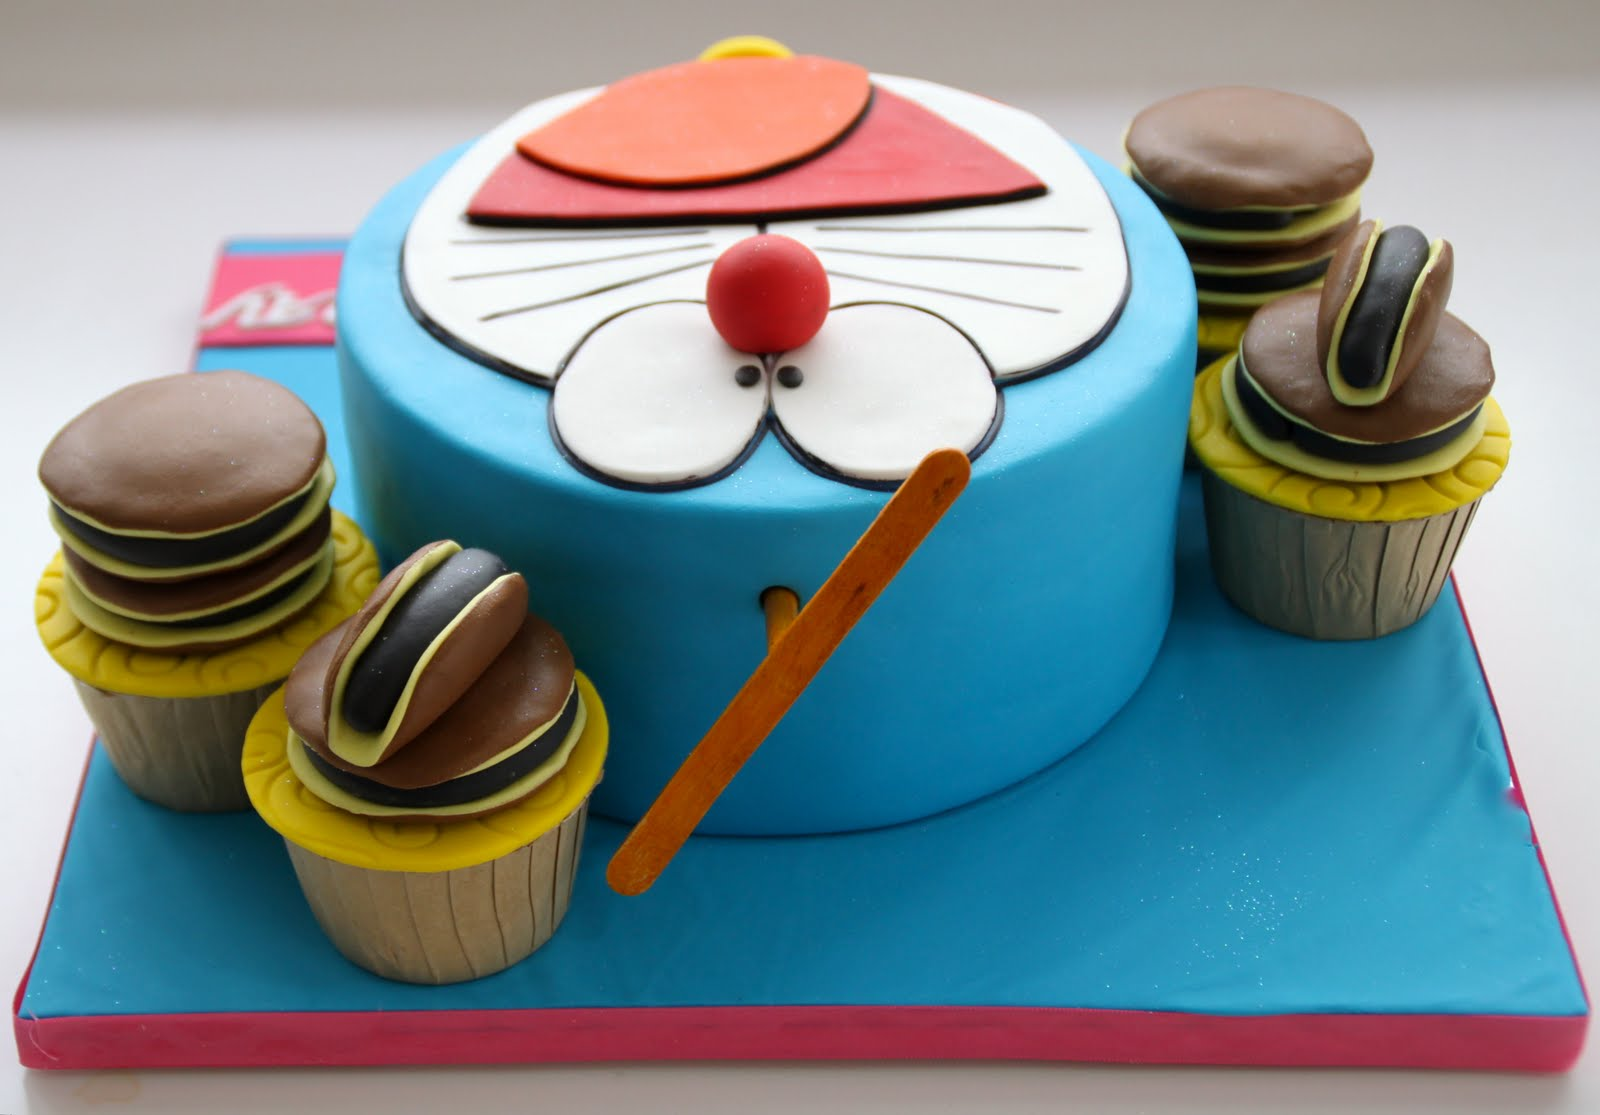 Doraemon Images For Cake : Celebrate with Cake!: Doraemon Cake with Cupcakes